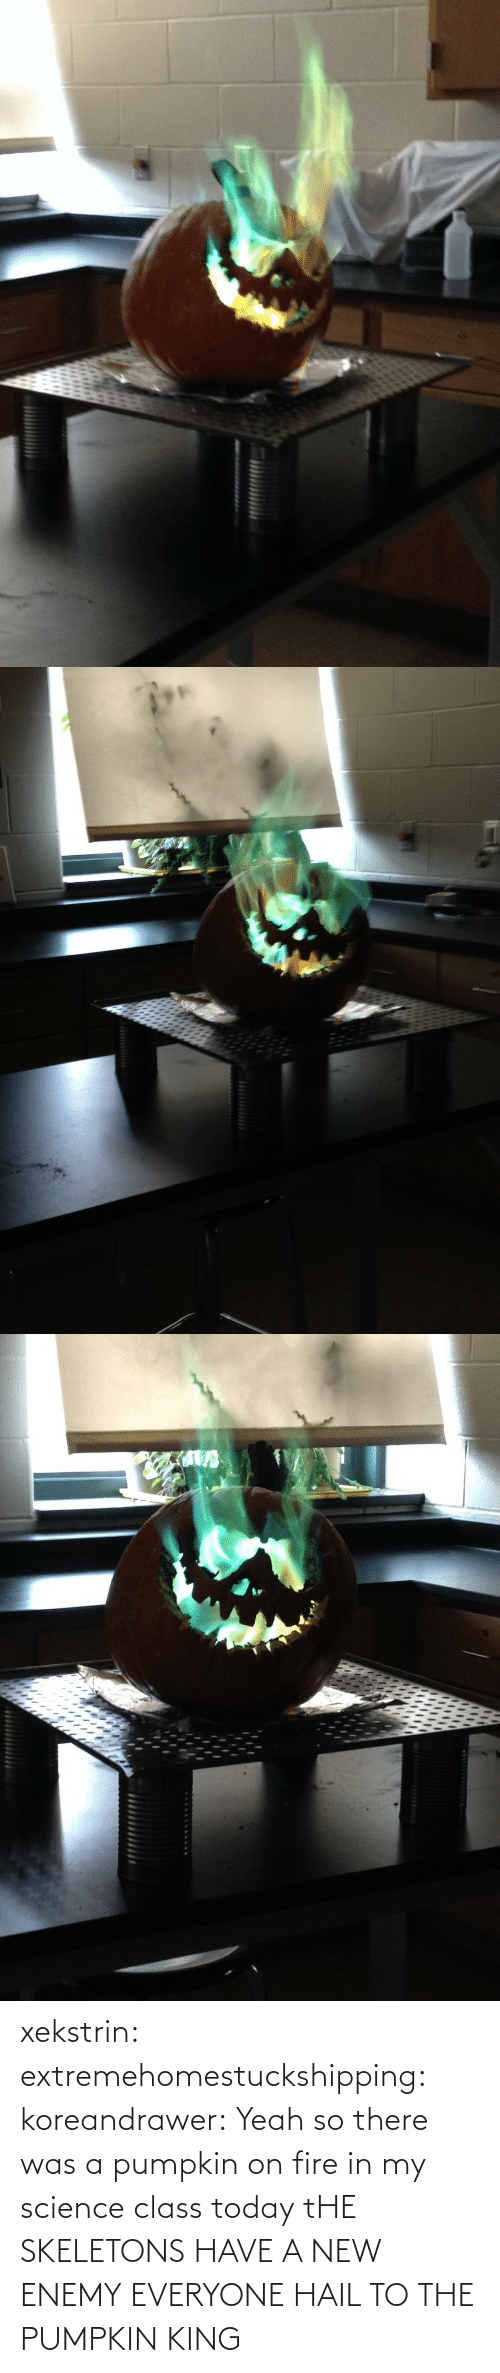 Fire, Tumblr, and Yeah: xekstrin: extremehomestuckshipping:  koreandrawer:  Yeah so there was a pumpkin on fire in my science class today  tHE SKELETONS HAVE A NEW ENEMY  EVERYONE HAIL TO THE PUMPKIN KING